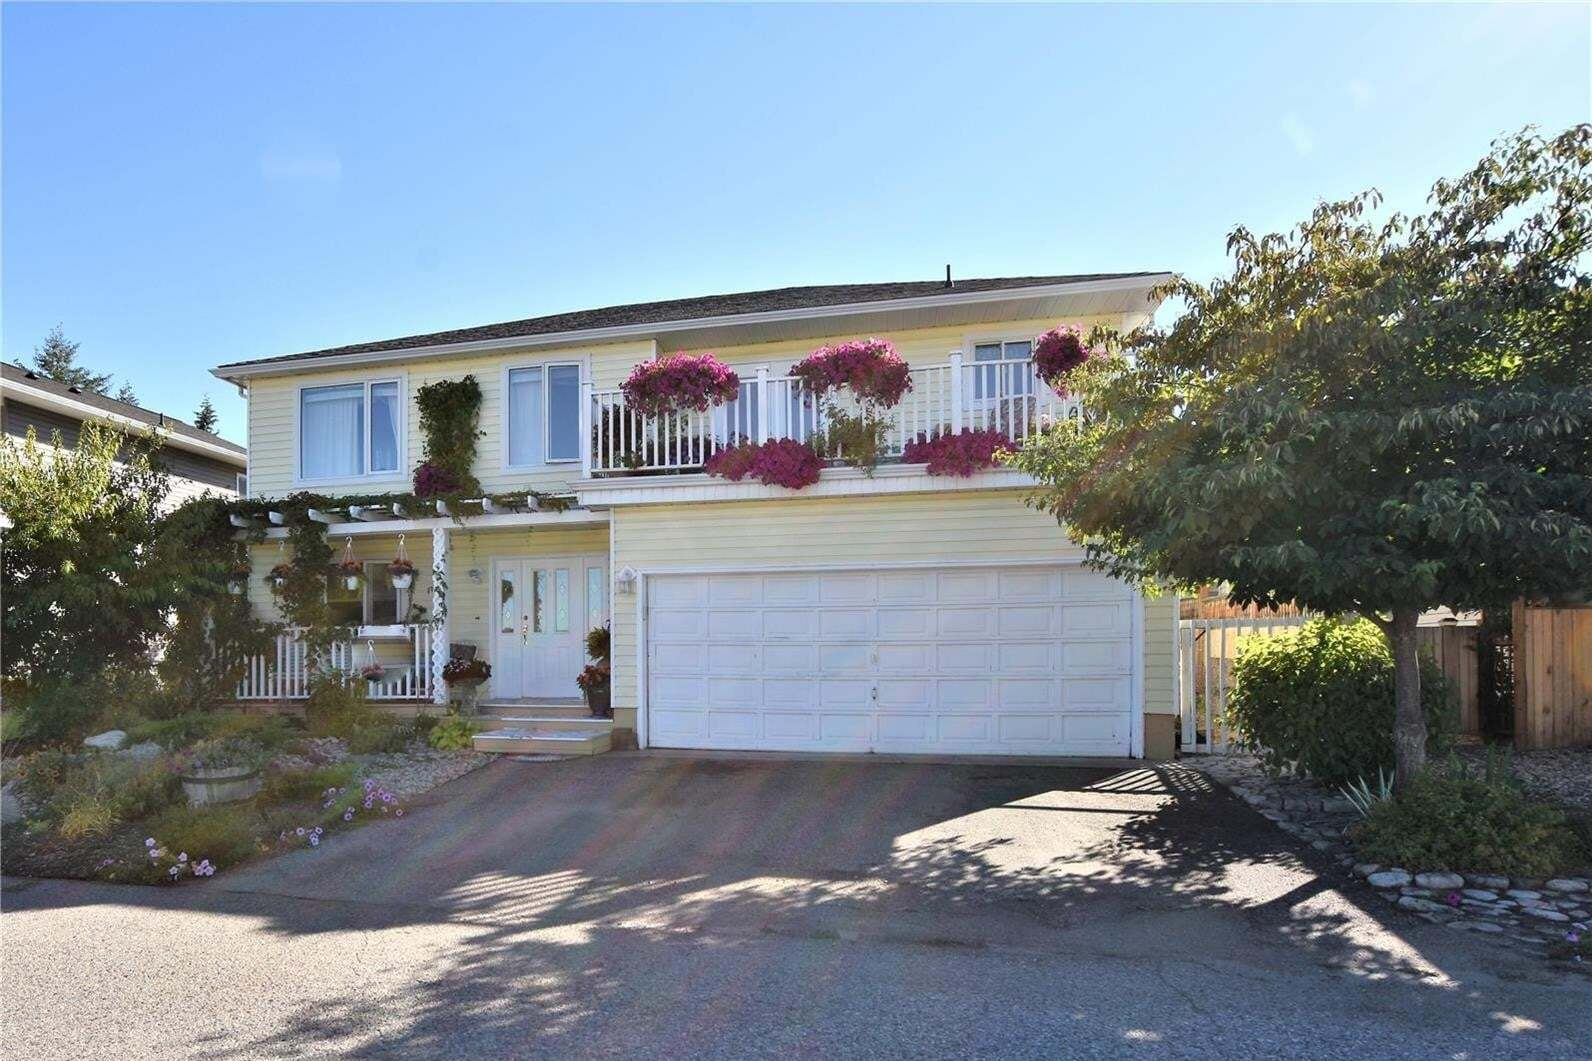 House for sale at 684 Cougar St Vernon British Columbia - MLS: 10201271